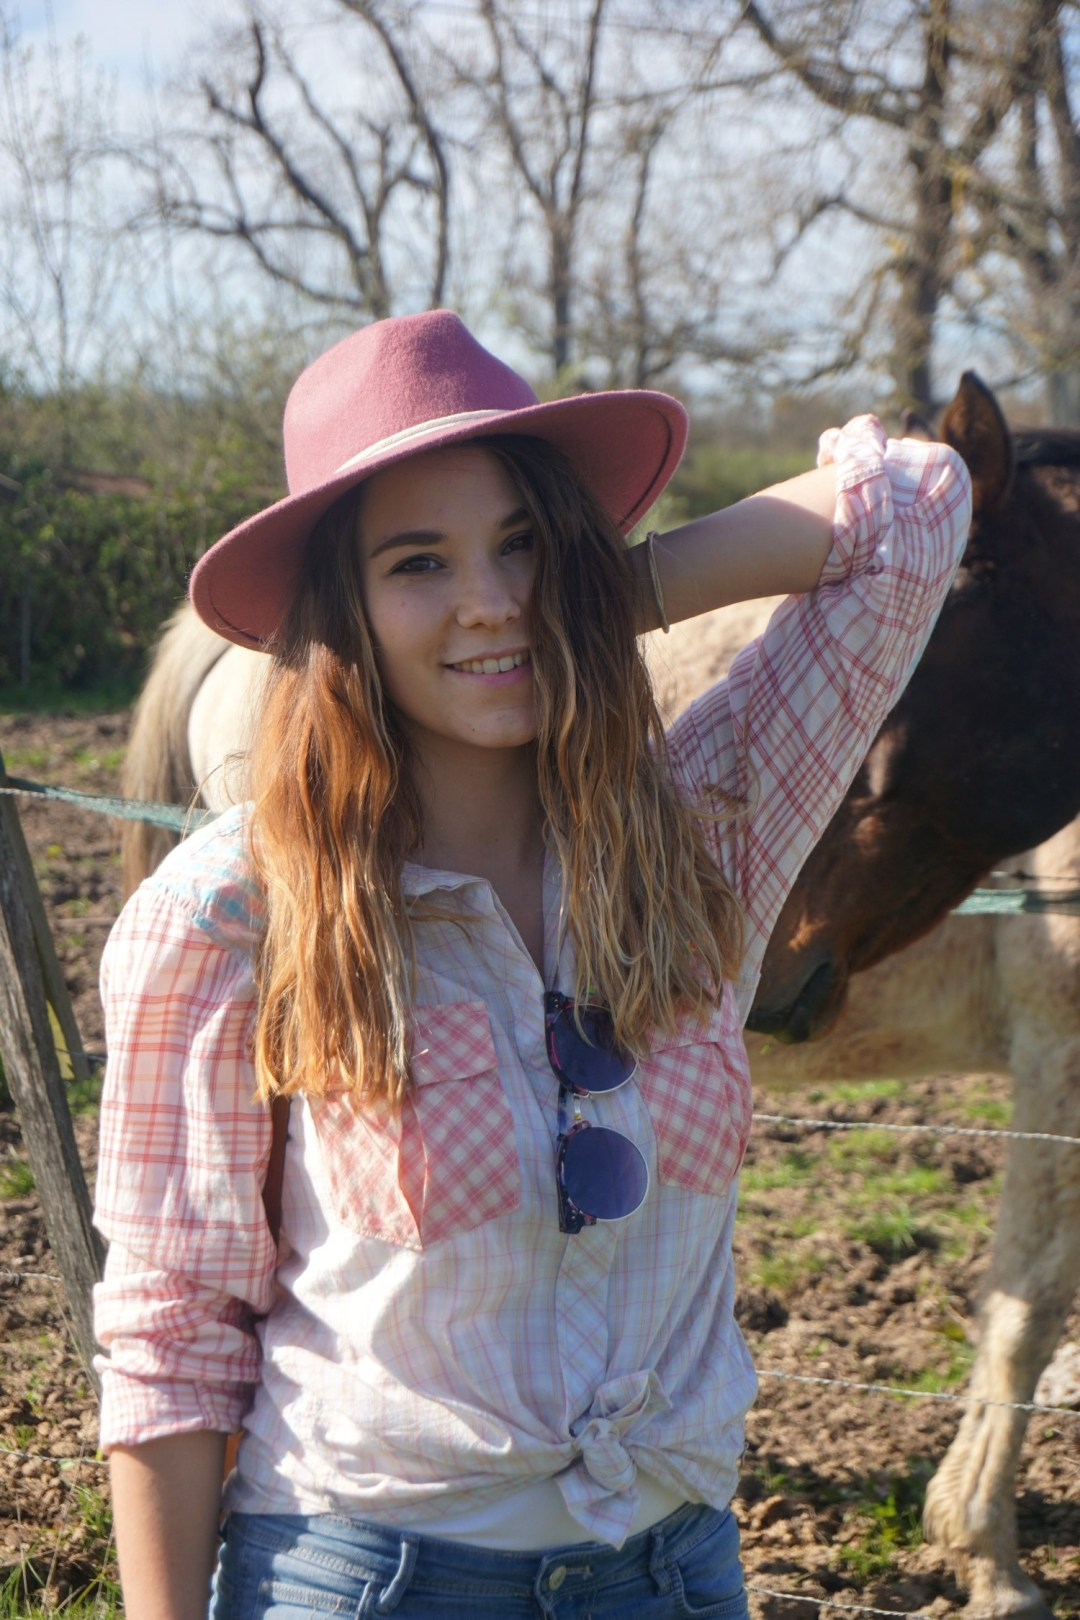 LOOK WESTERN GIRLY COW GIRL CHAPEAU ROSE BLOG MODE BORDEAUX FRANCE CORSE FASHION CENTRE EQUESTRE 12